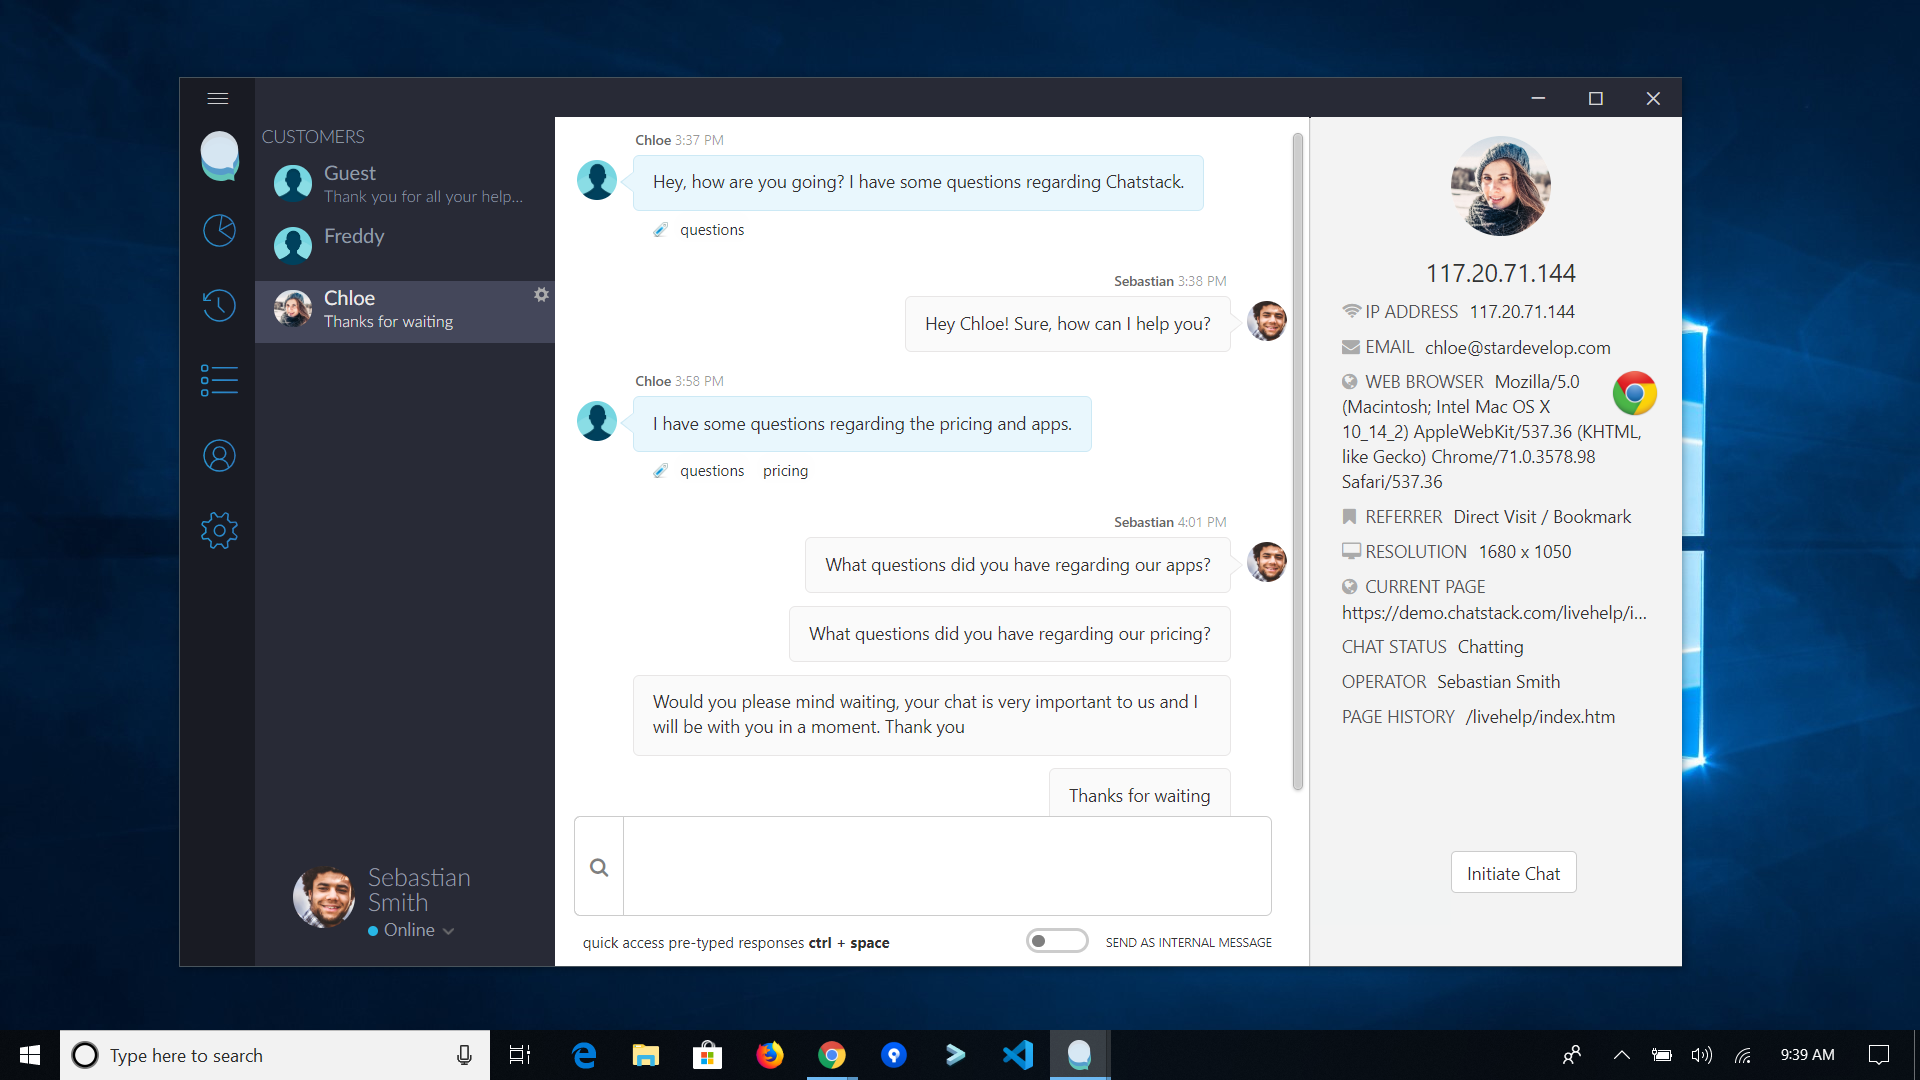 Windows 10 App - Chatstack - Live Chat Software